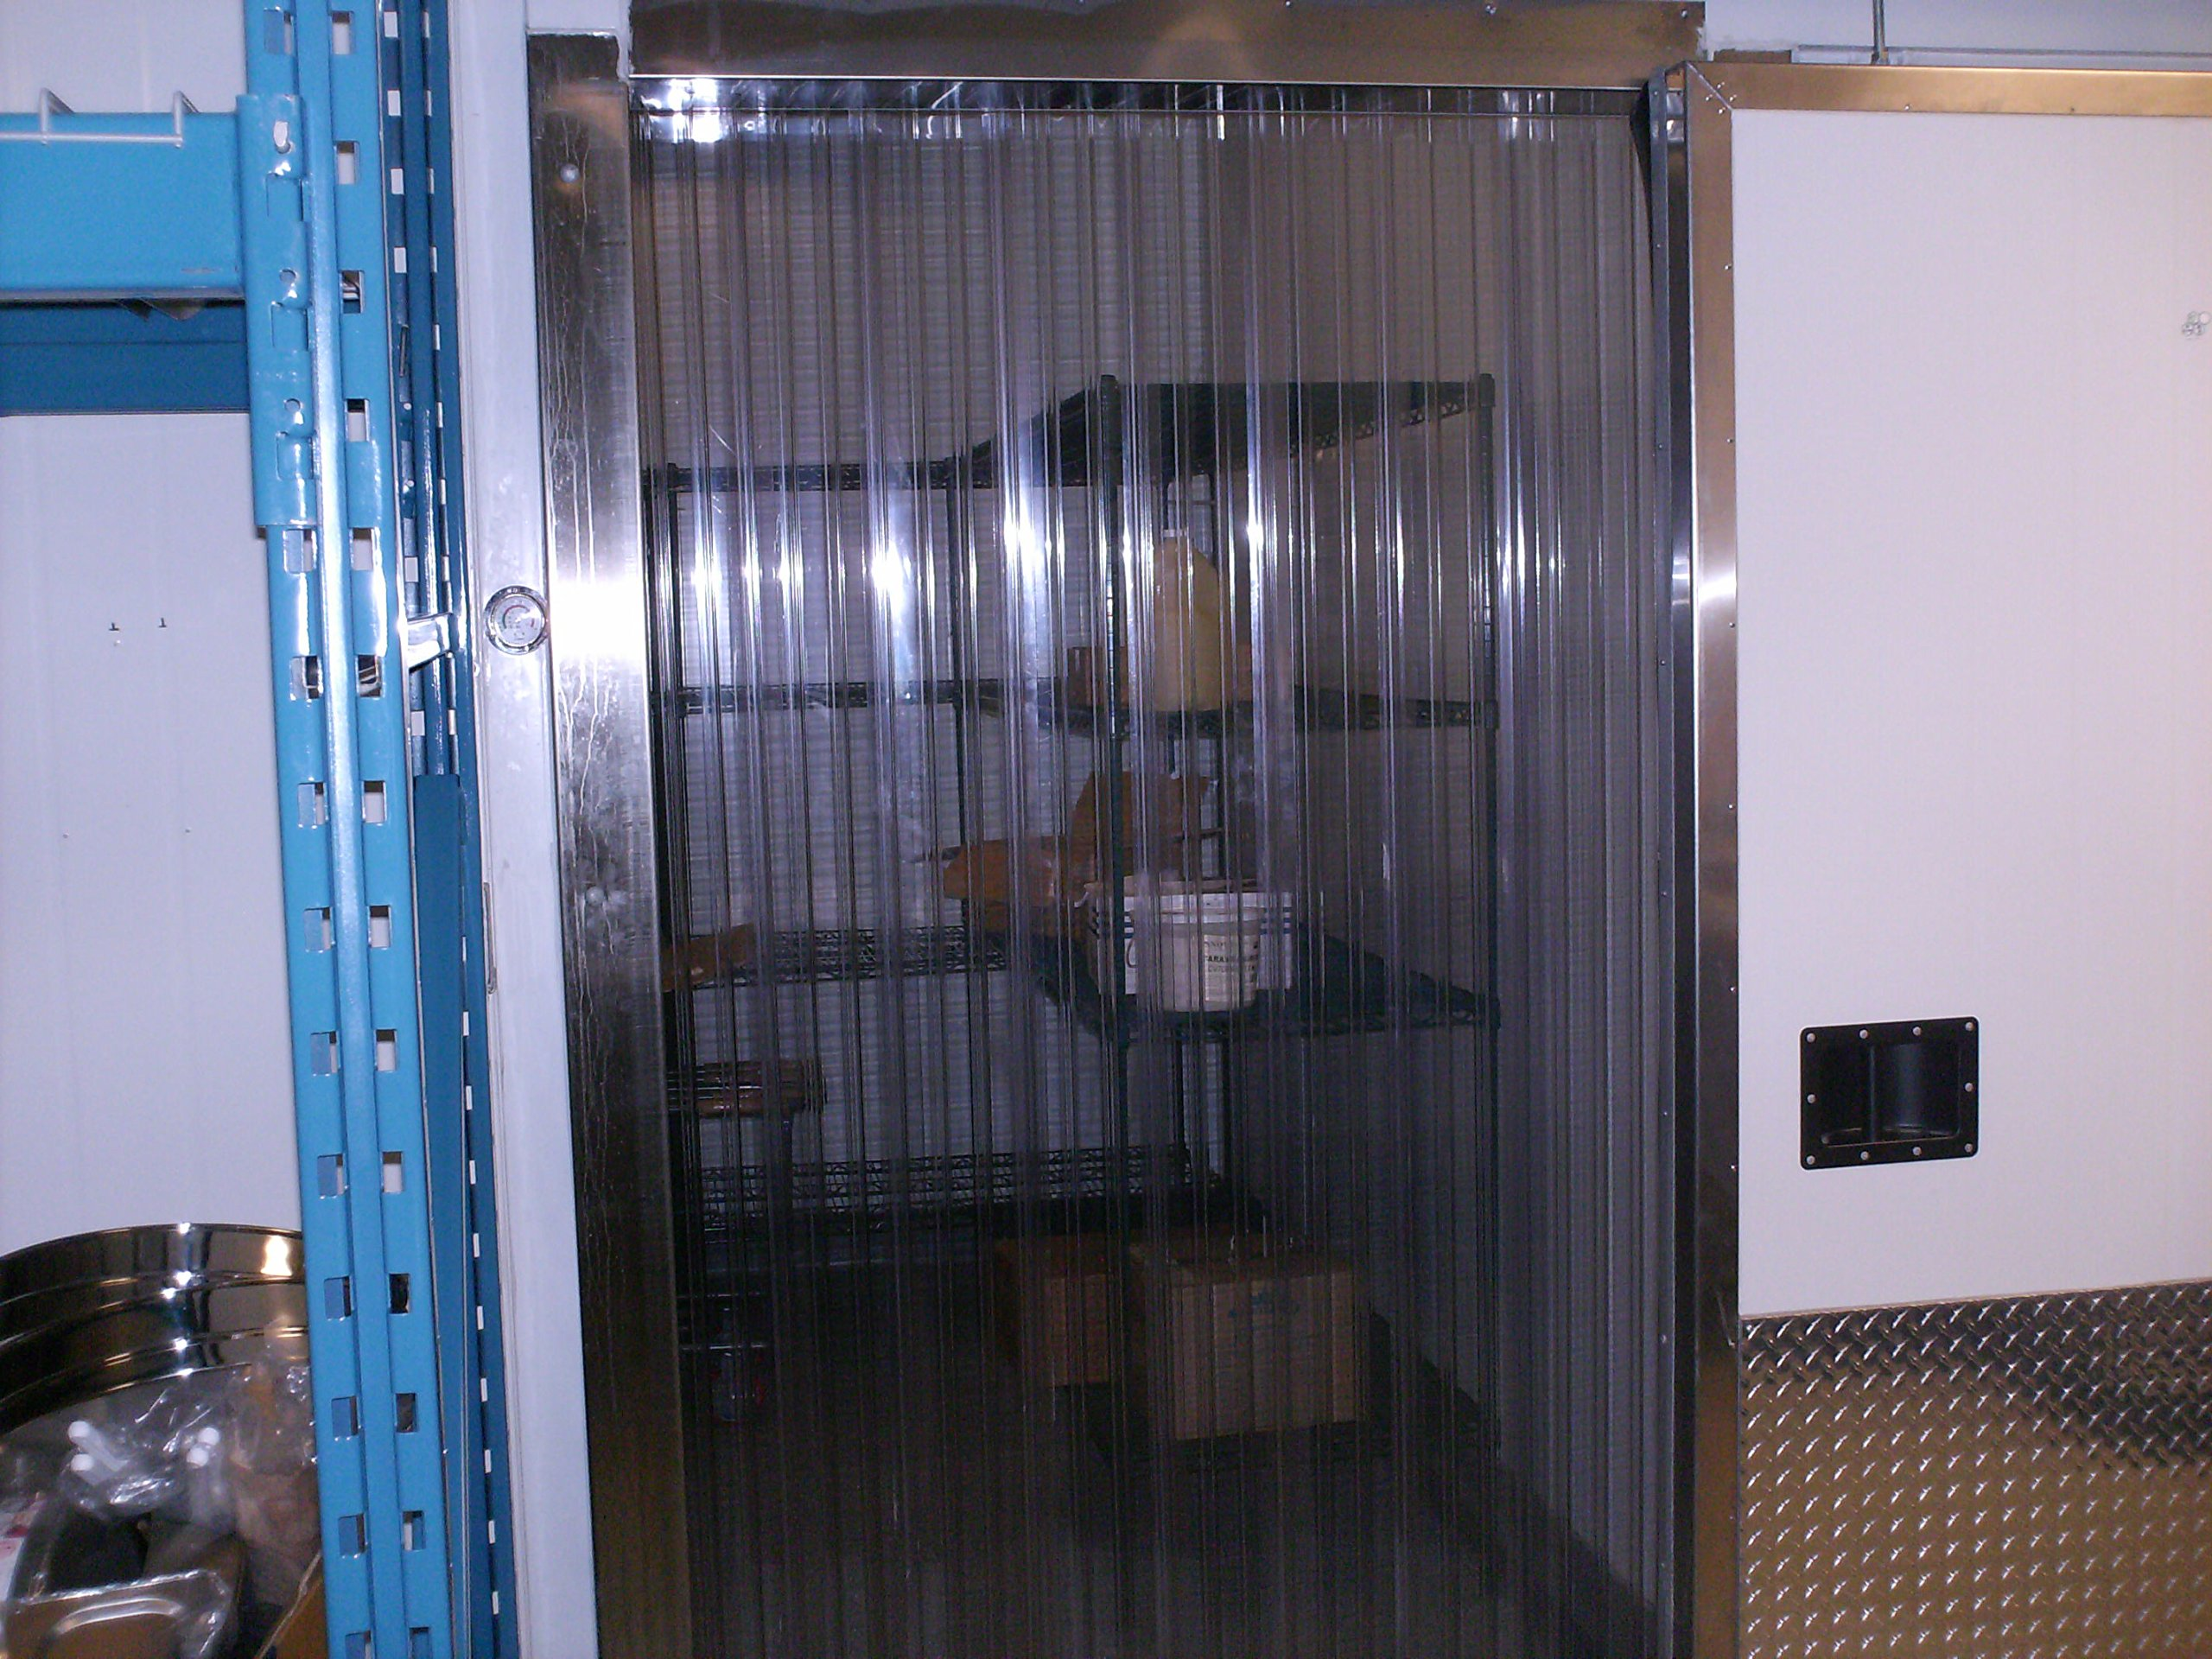 Strip-Curtains.com: Strip Door Curtain Width X 72 in. Common Door Kit Blue Opaque Strip 8 in 6 ft Strips with 100/% Overlap Hardware Included Height 9 ft 108 in.